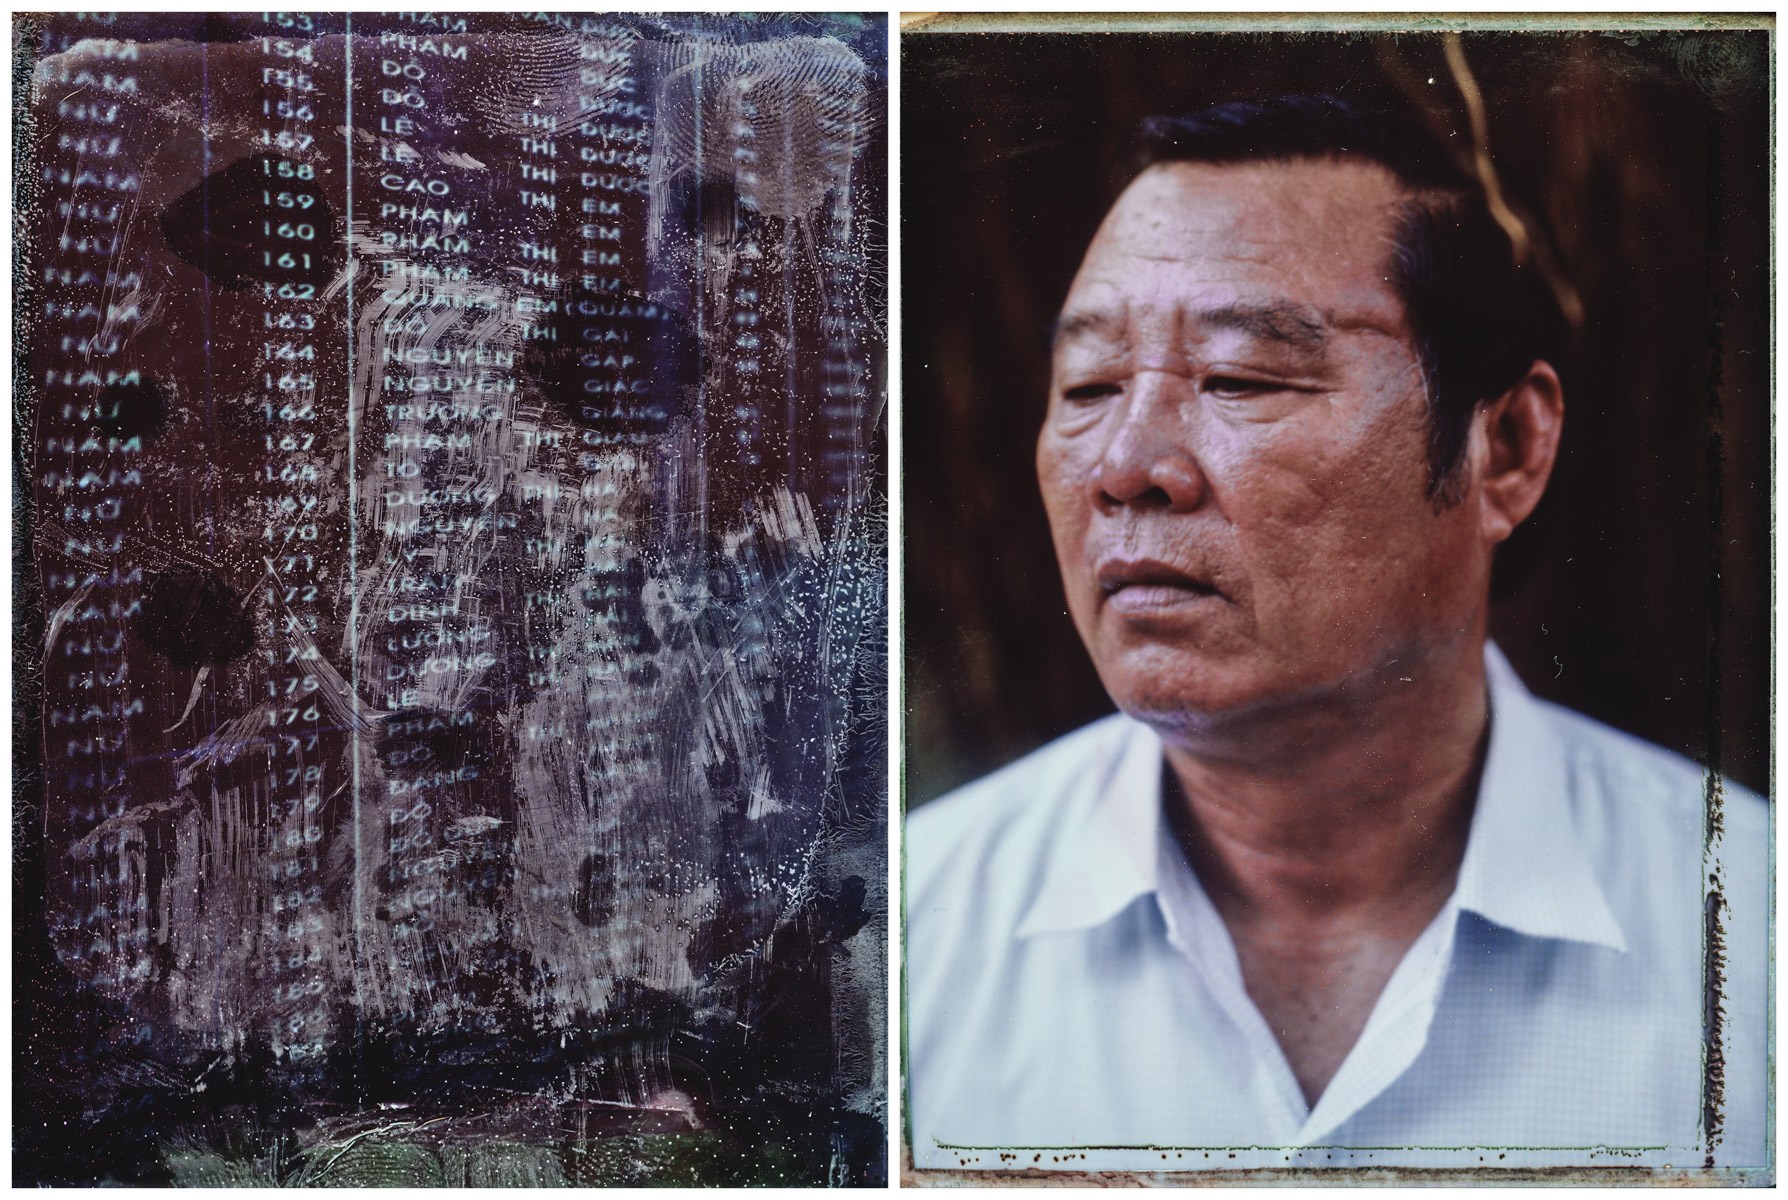 The names of 504 victims of the My Lai Massacre carved in marble at the museum in Quang Ngai, Vietnam. And a portrait of Pham Thanh Cong, the museum's director and a survivor of the massacre.